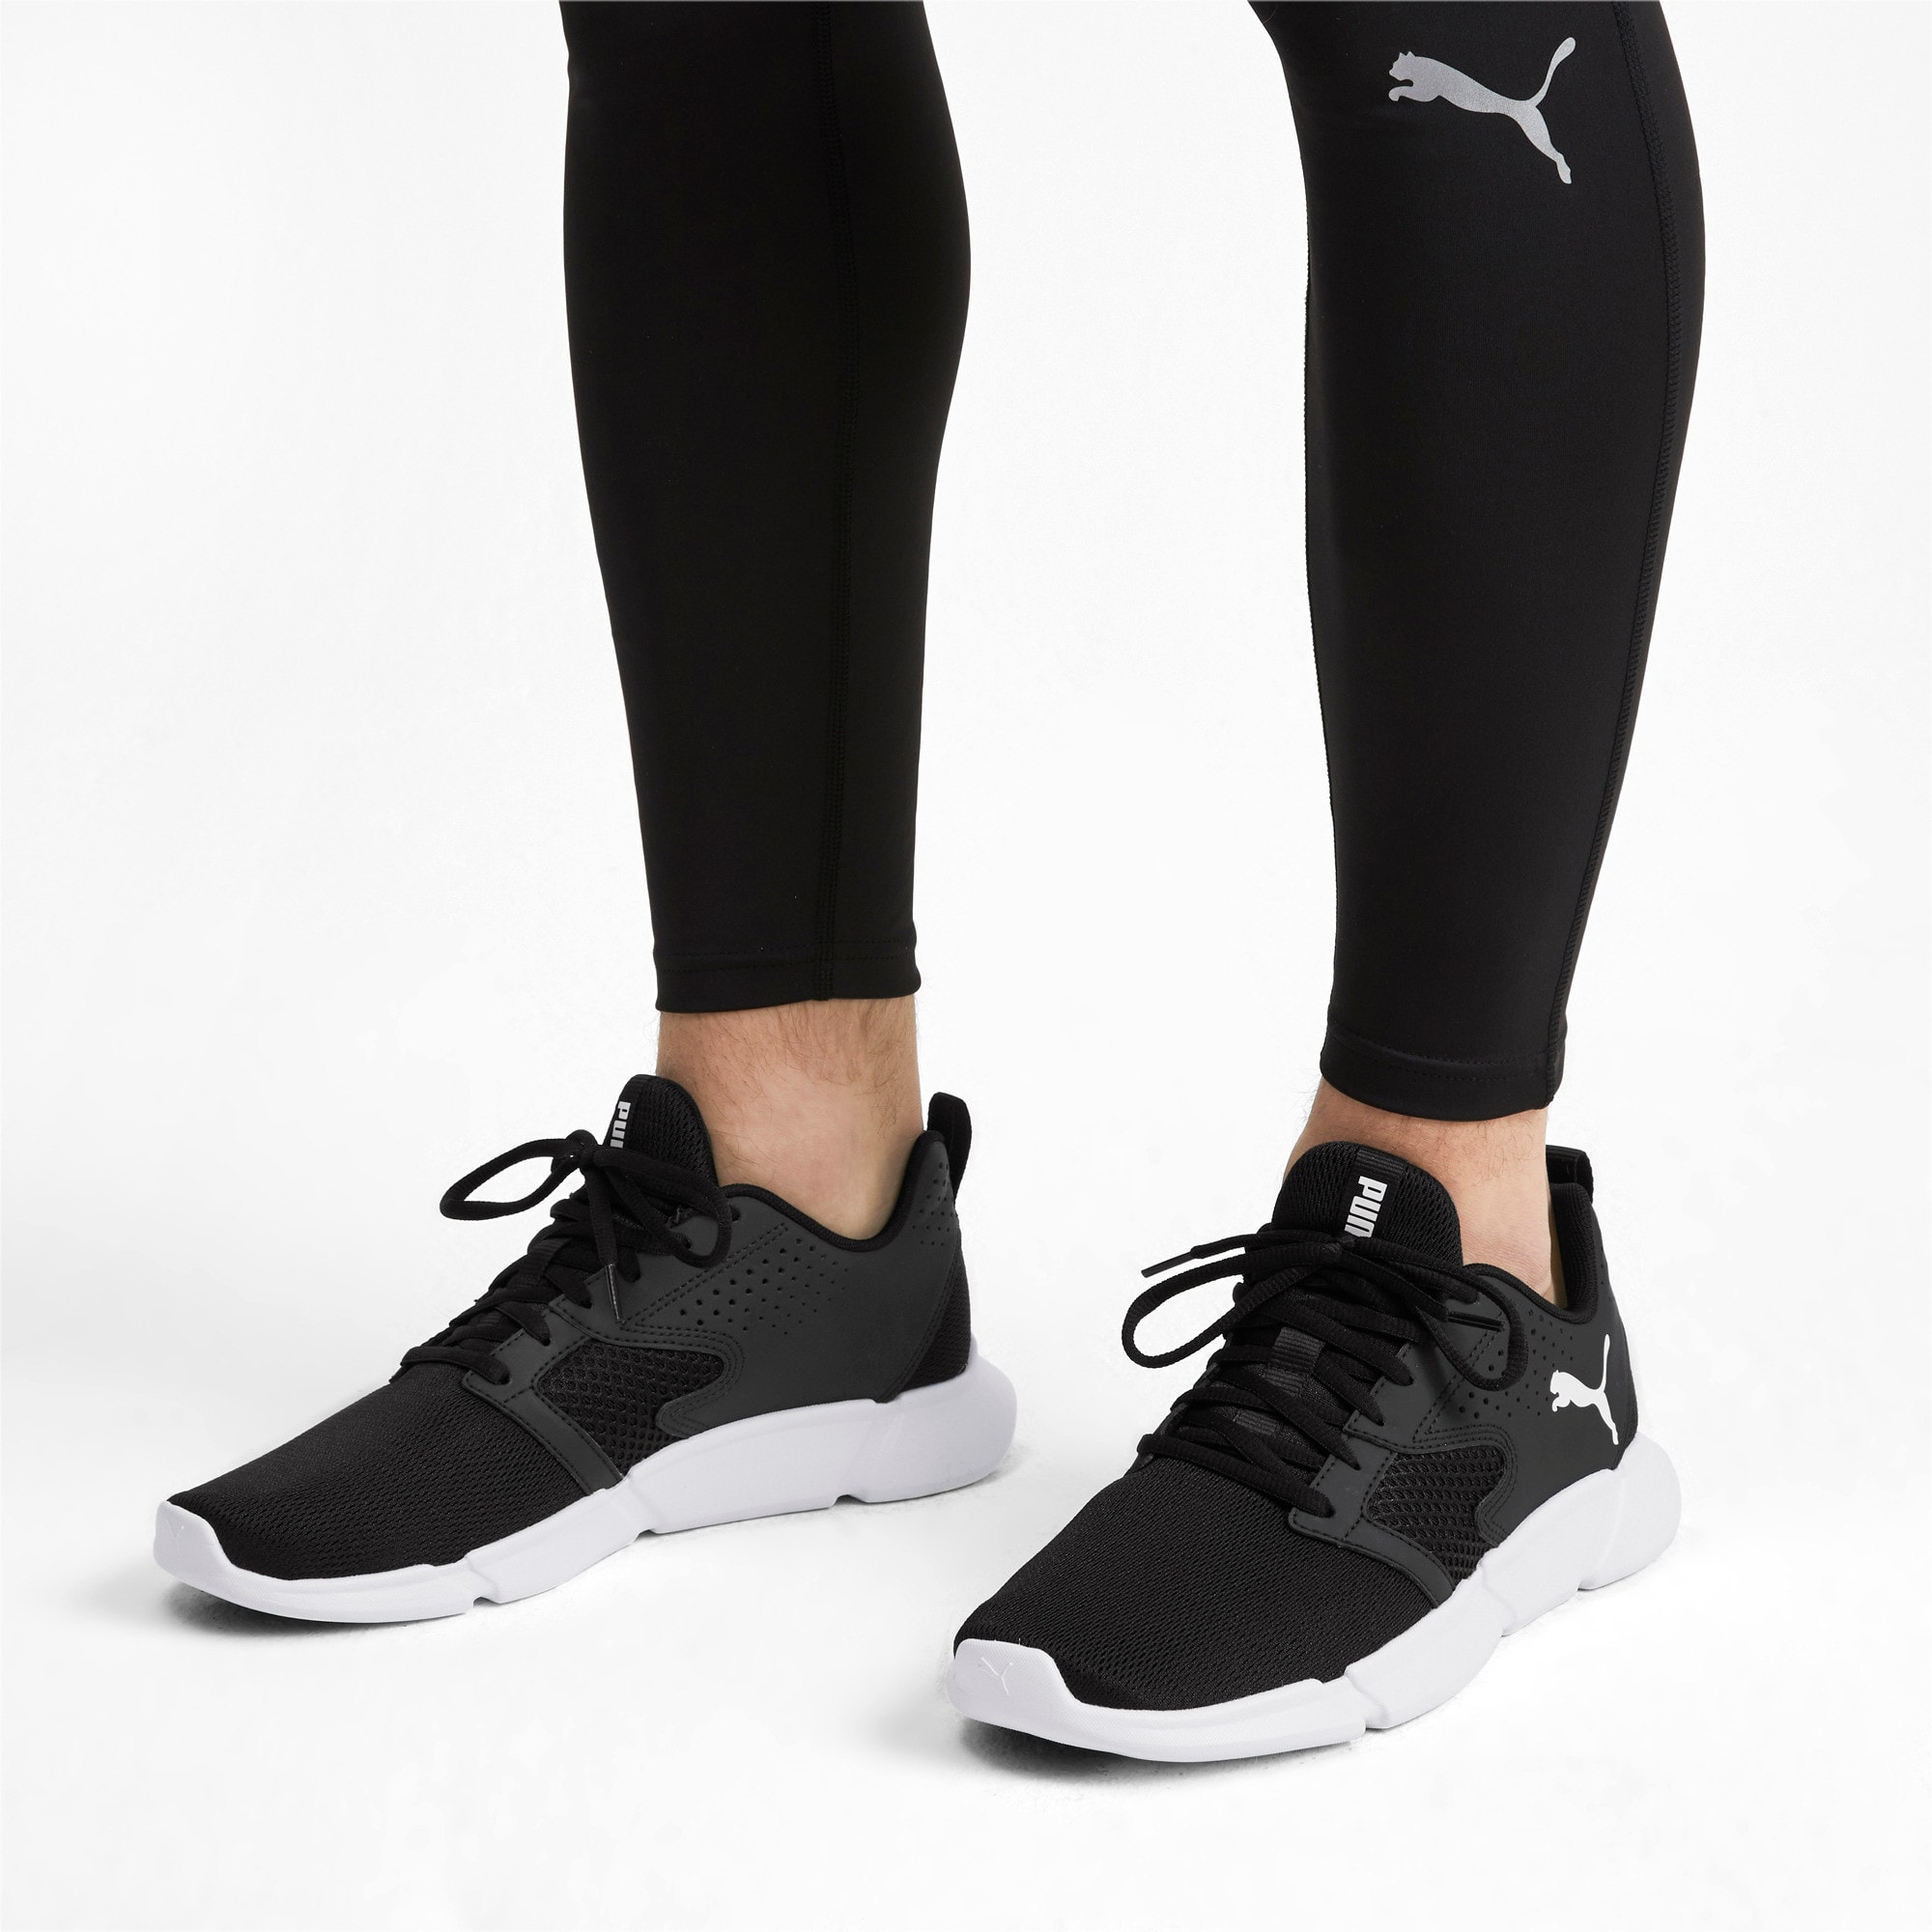 Thumbnail 3 of INTERFLEX Modern Sneakers, Puma Black-Puma White, medium